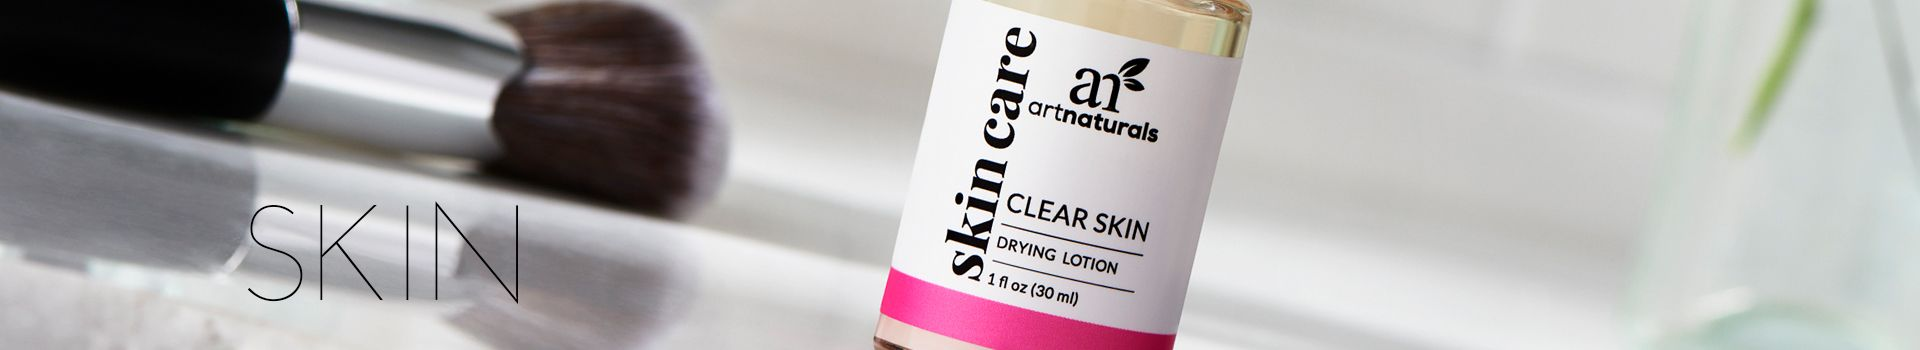 Cleaners & Moisturizers